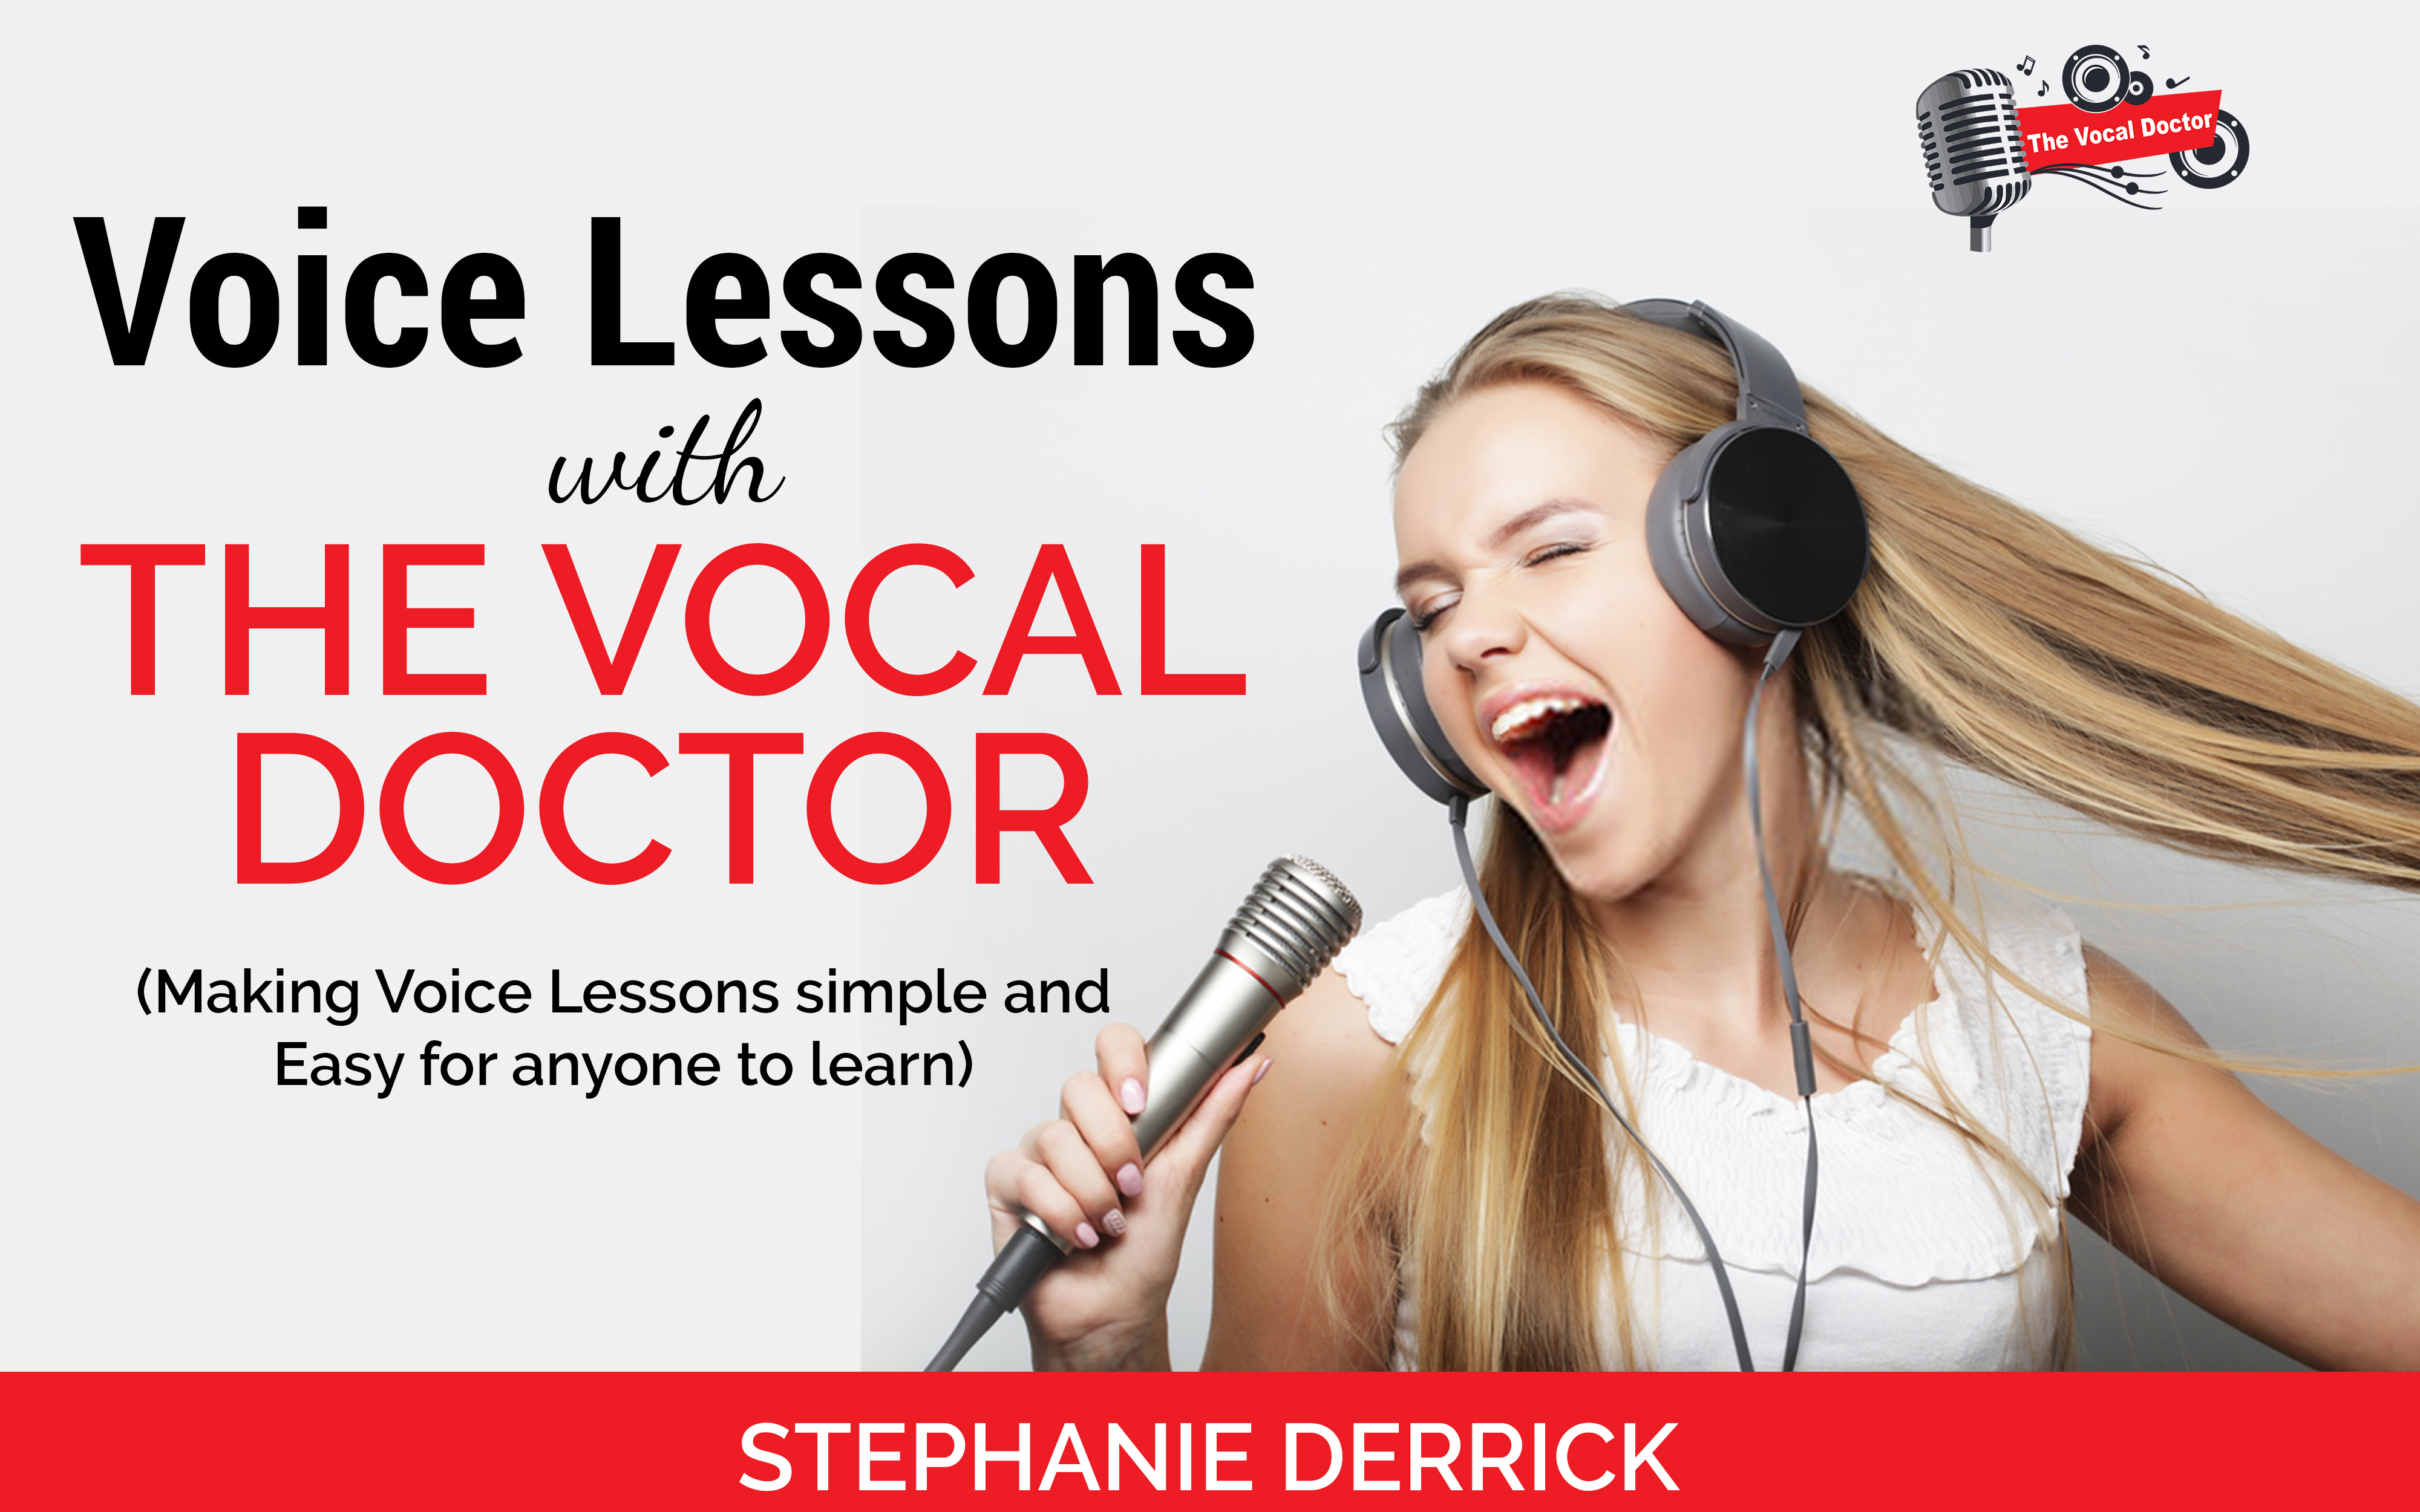 voice lessons with the Vocal Doctor making voice lessons simly and easy for anyone to learn